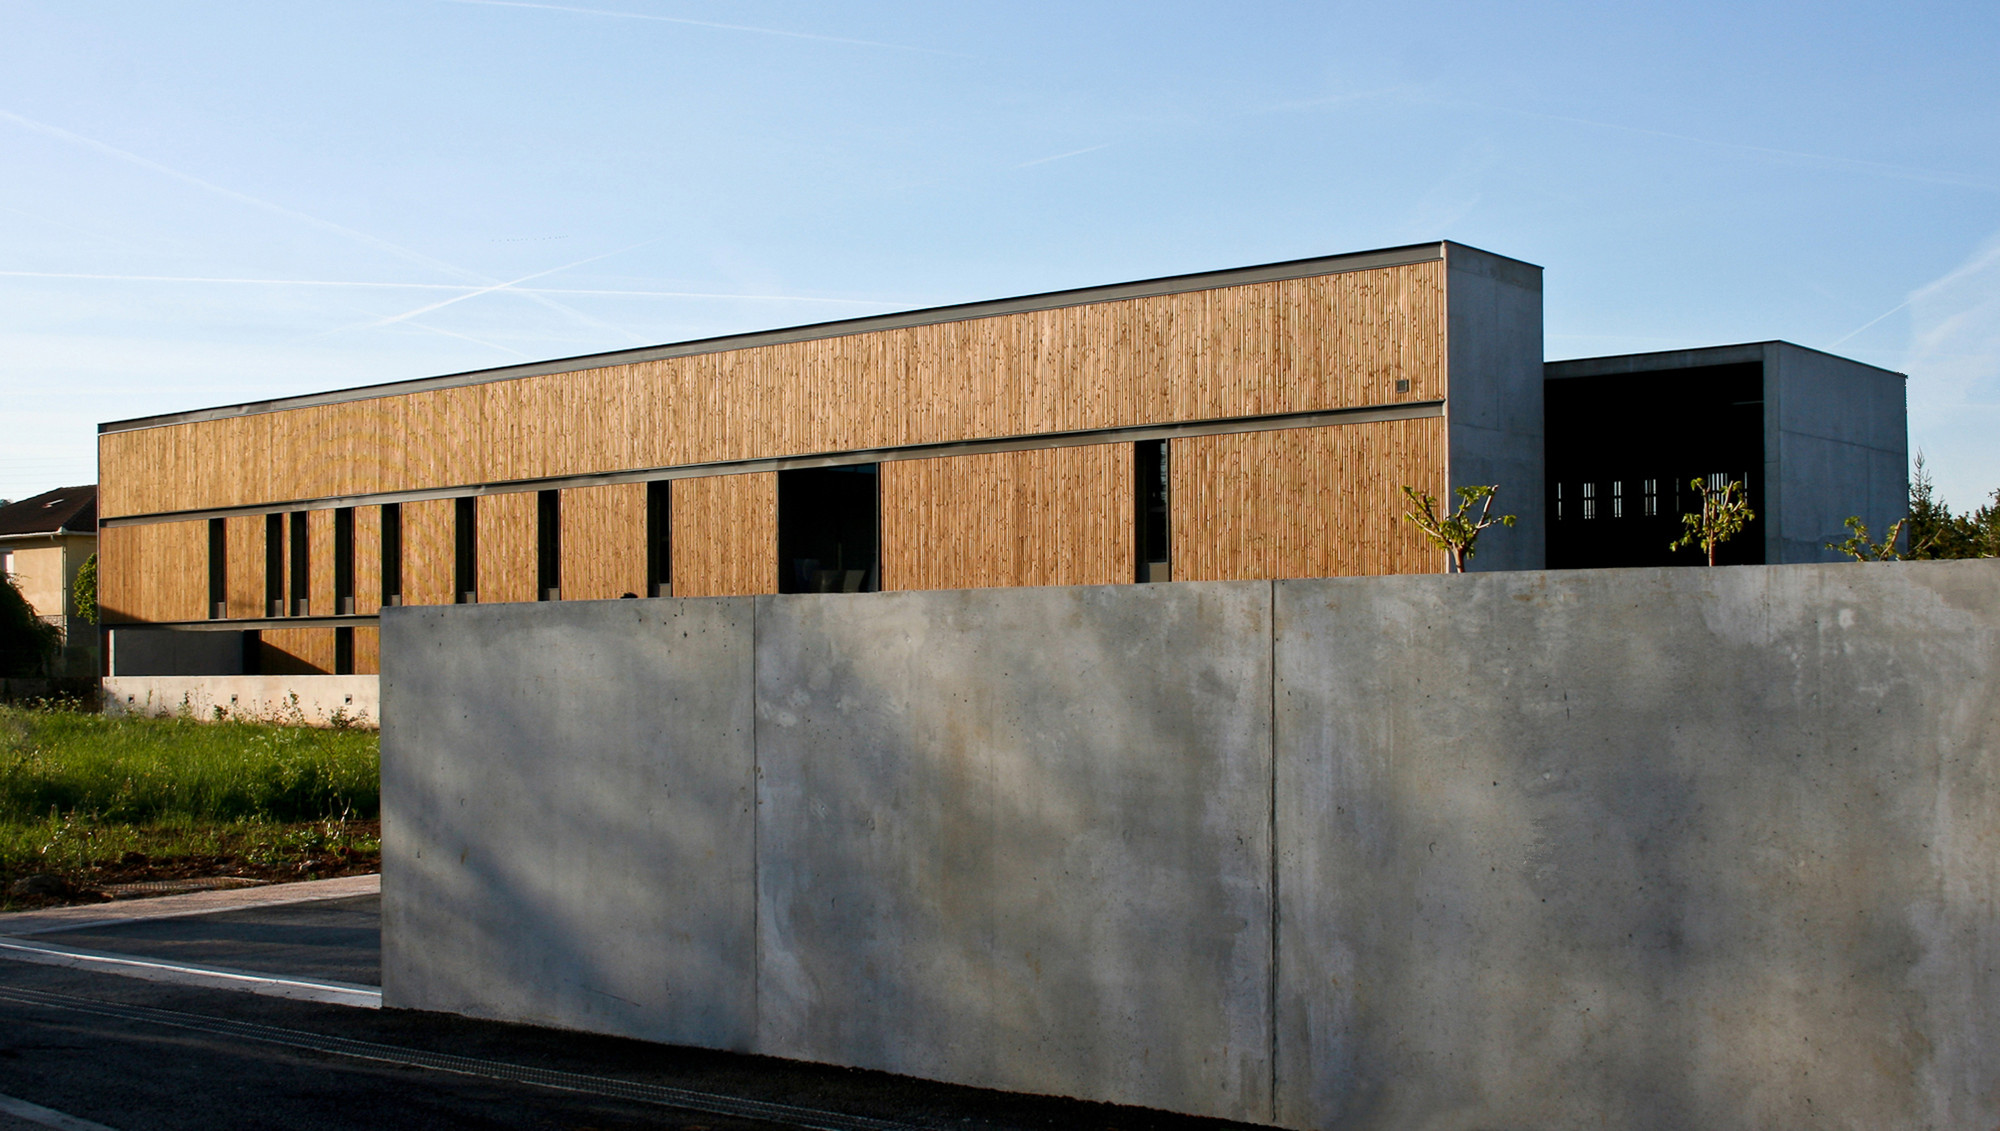 Daycare Center For Disabled Children / Atelier d'Architecture Laurent Tournié, Courtesy of Atelier d'Architecture Laurent Tournié